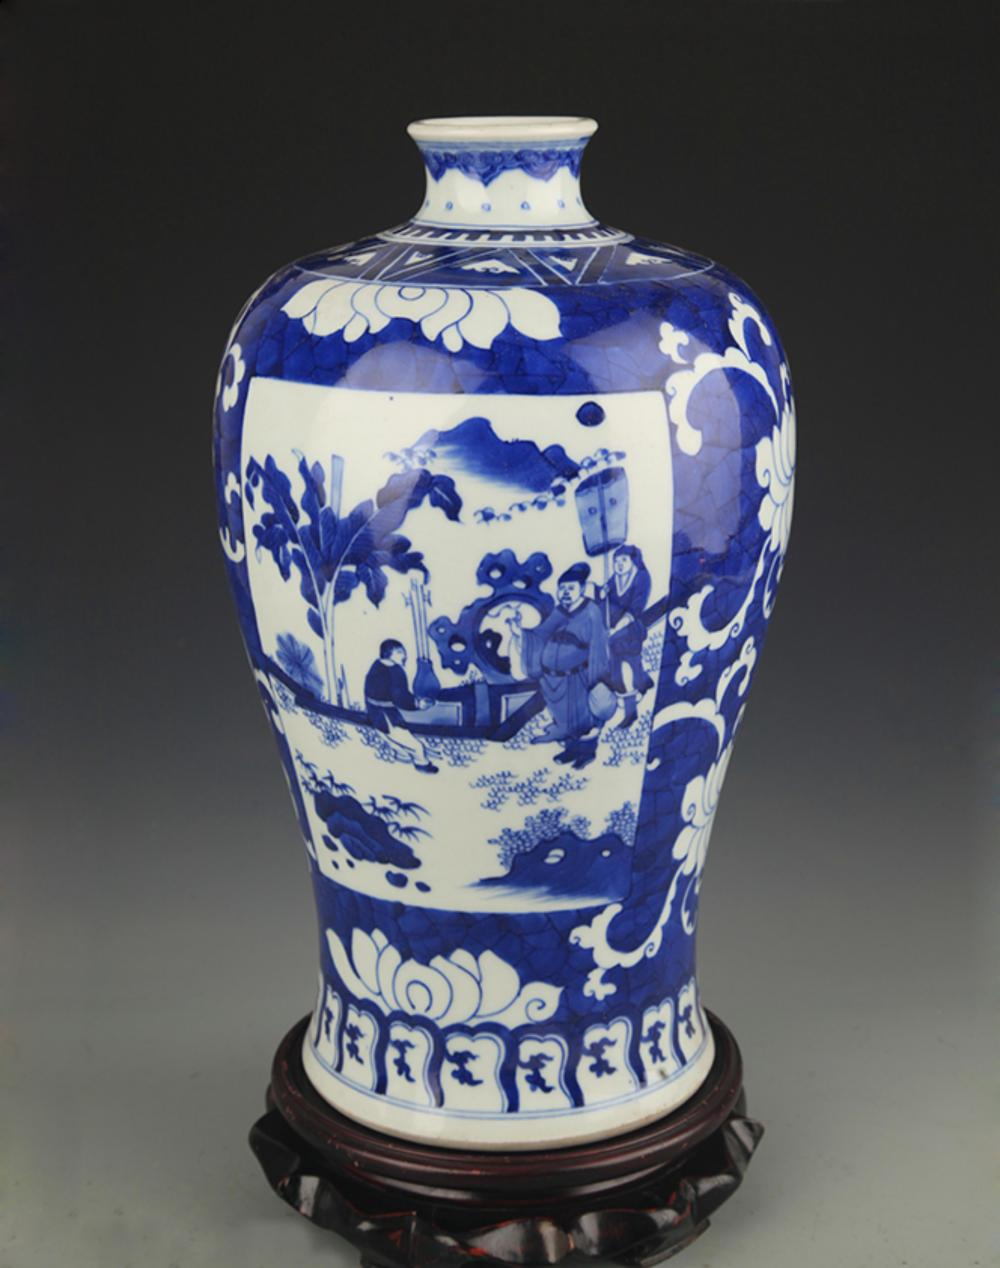 A BLUE AND WHITE STORY PAINTED MEI BOTTLE